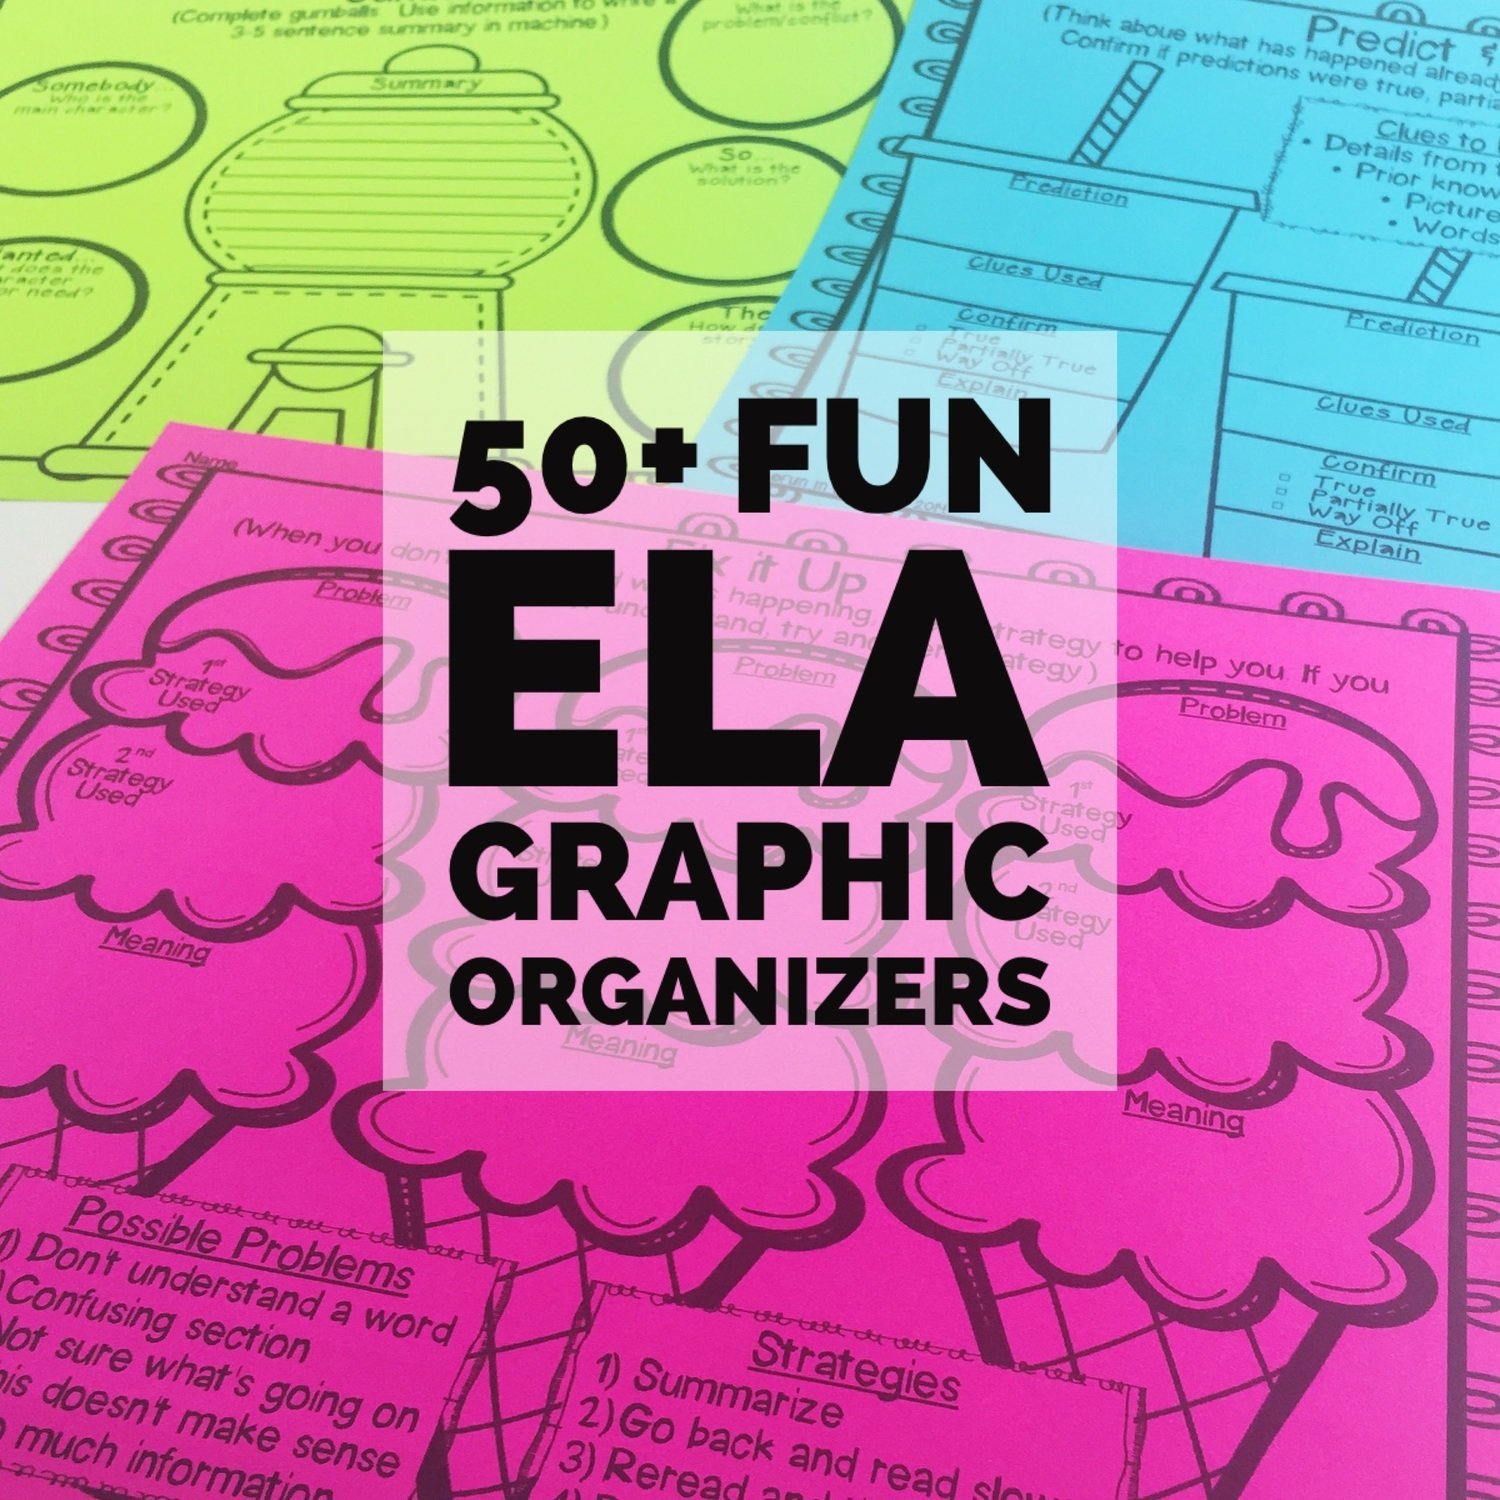 Graphic Organizers in a Fun Food Theme